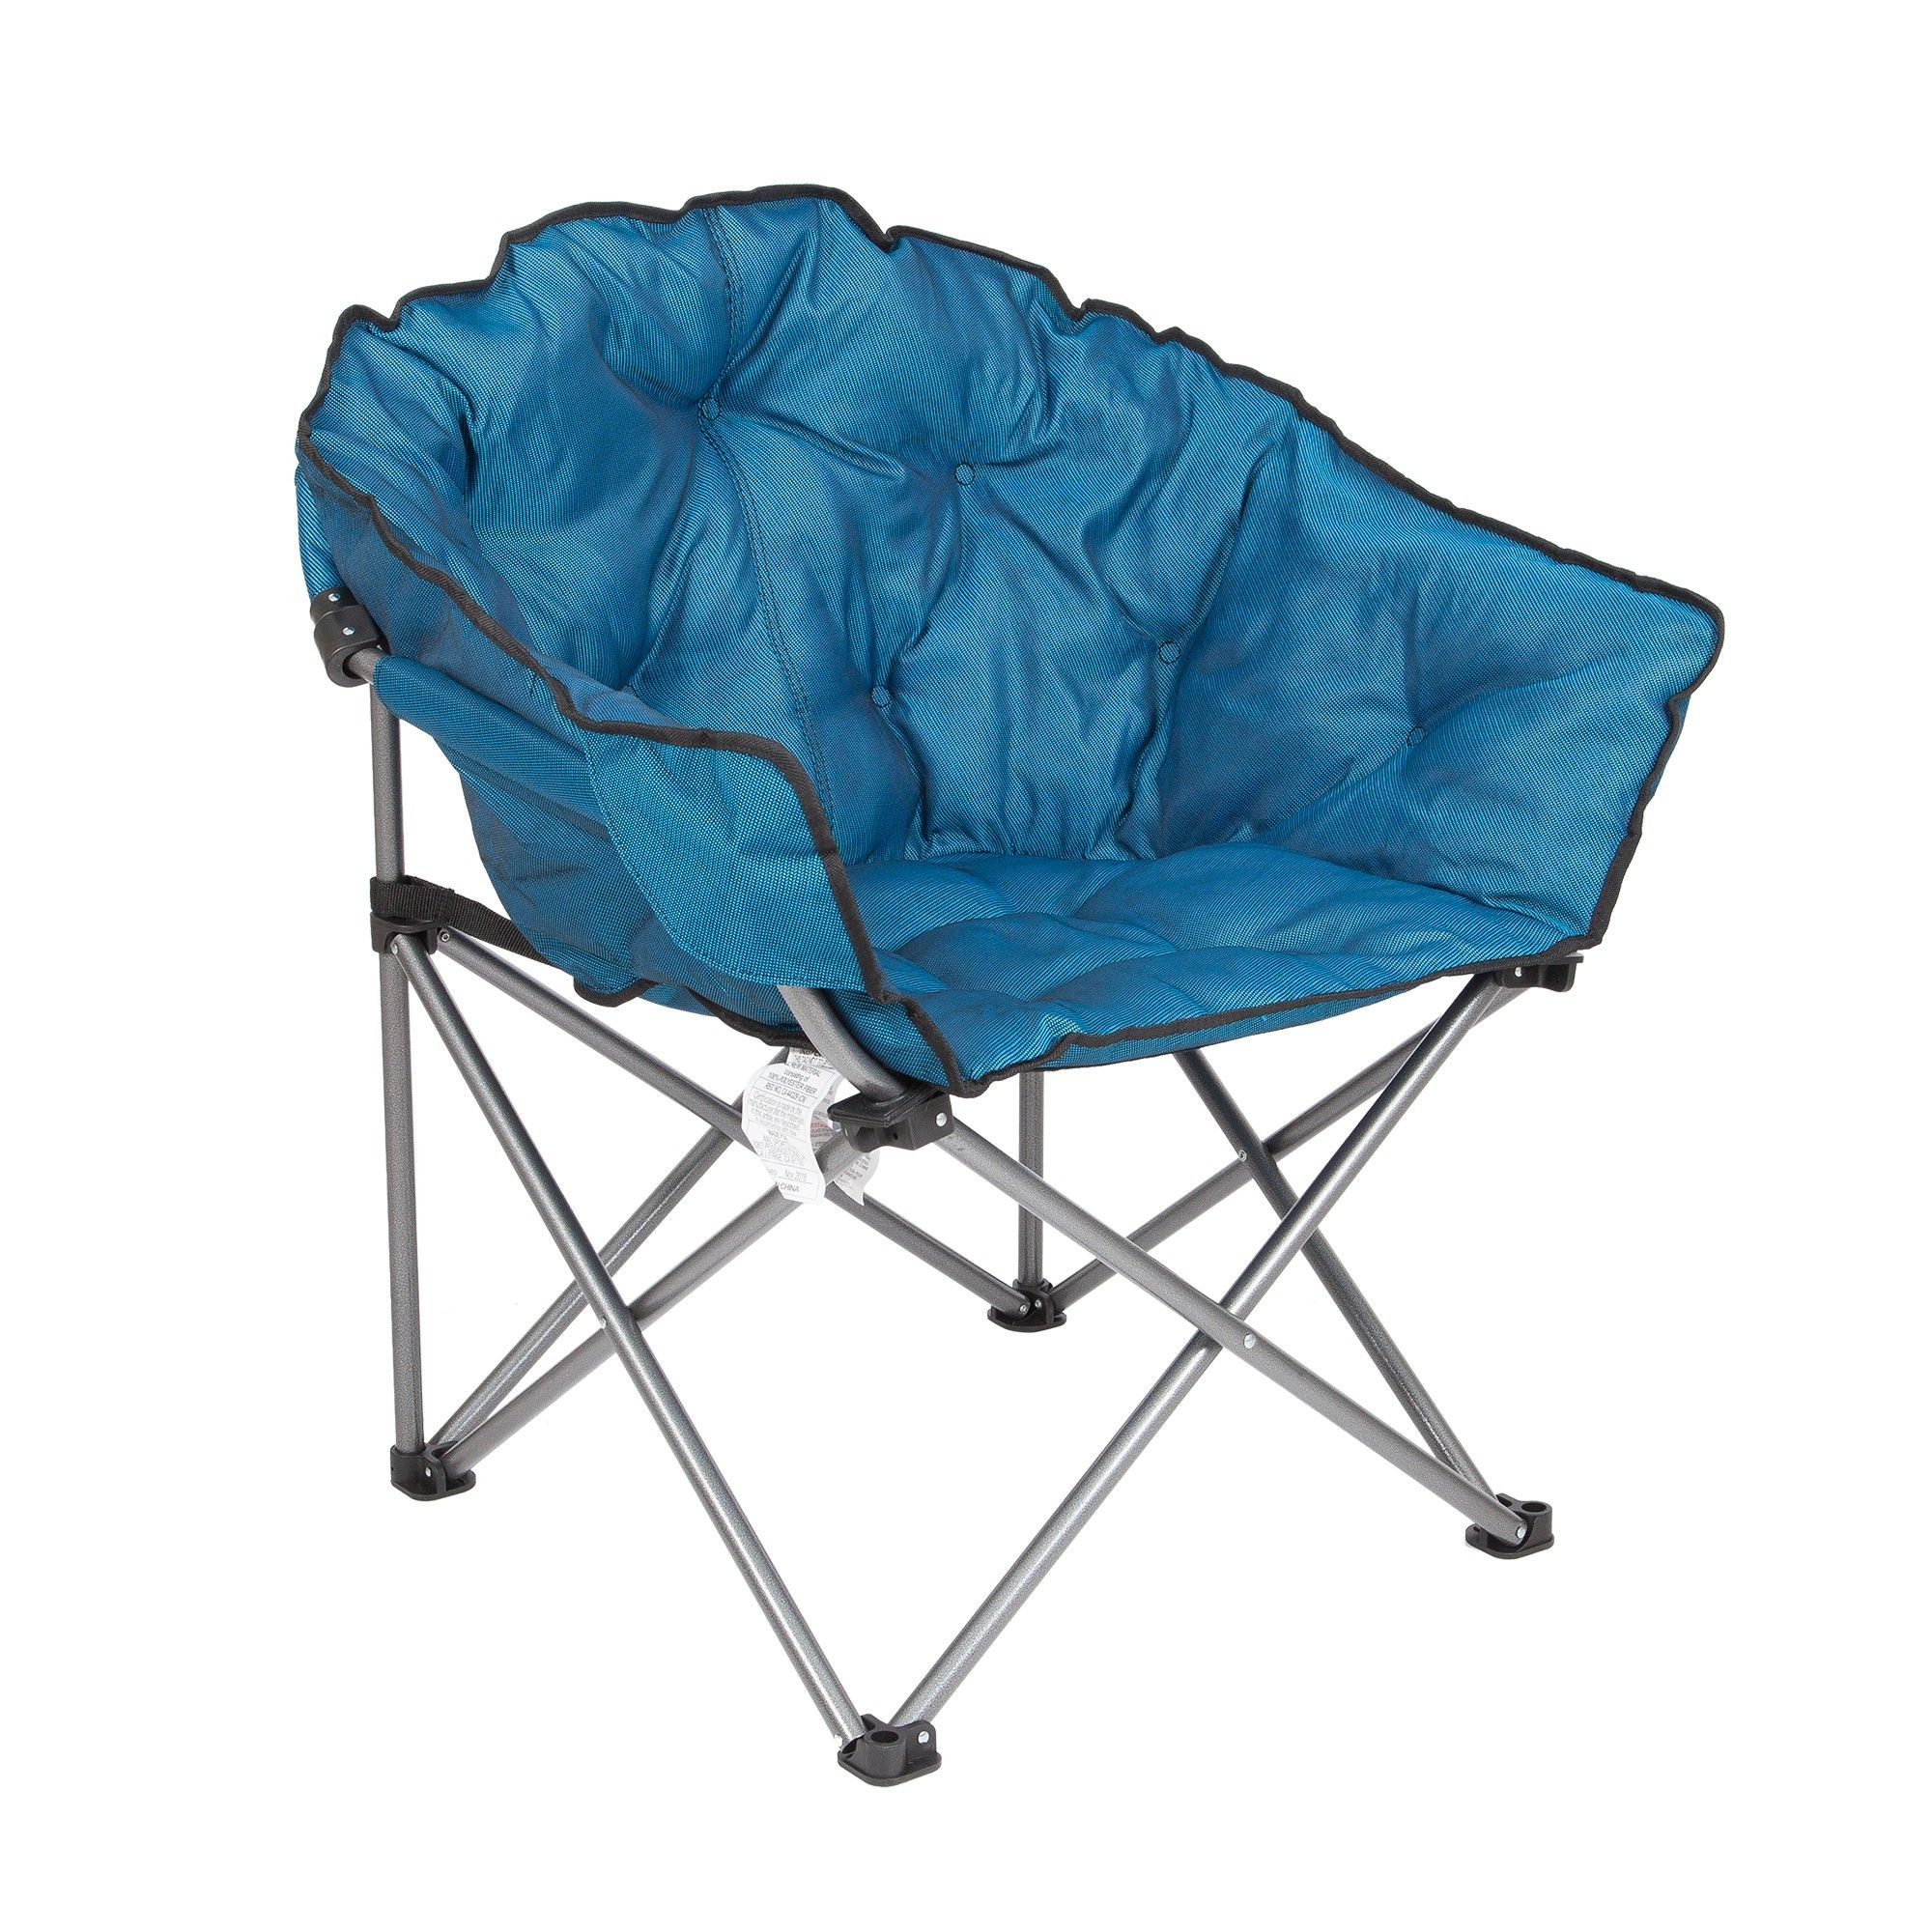 Stupendous Mac Sports Folding Padded Outdoor Club Camping Chair With Uwap Interior Chair Design Uwaporg